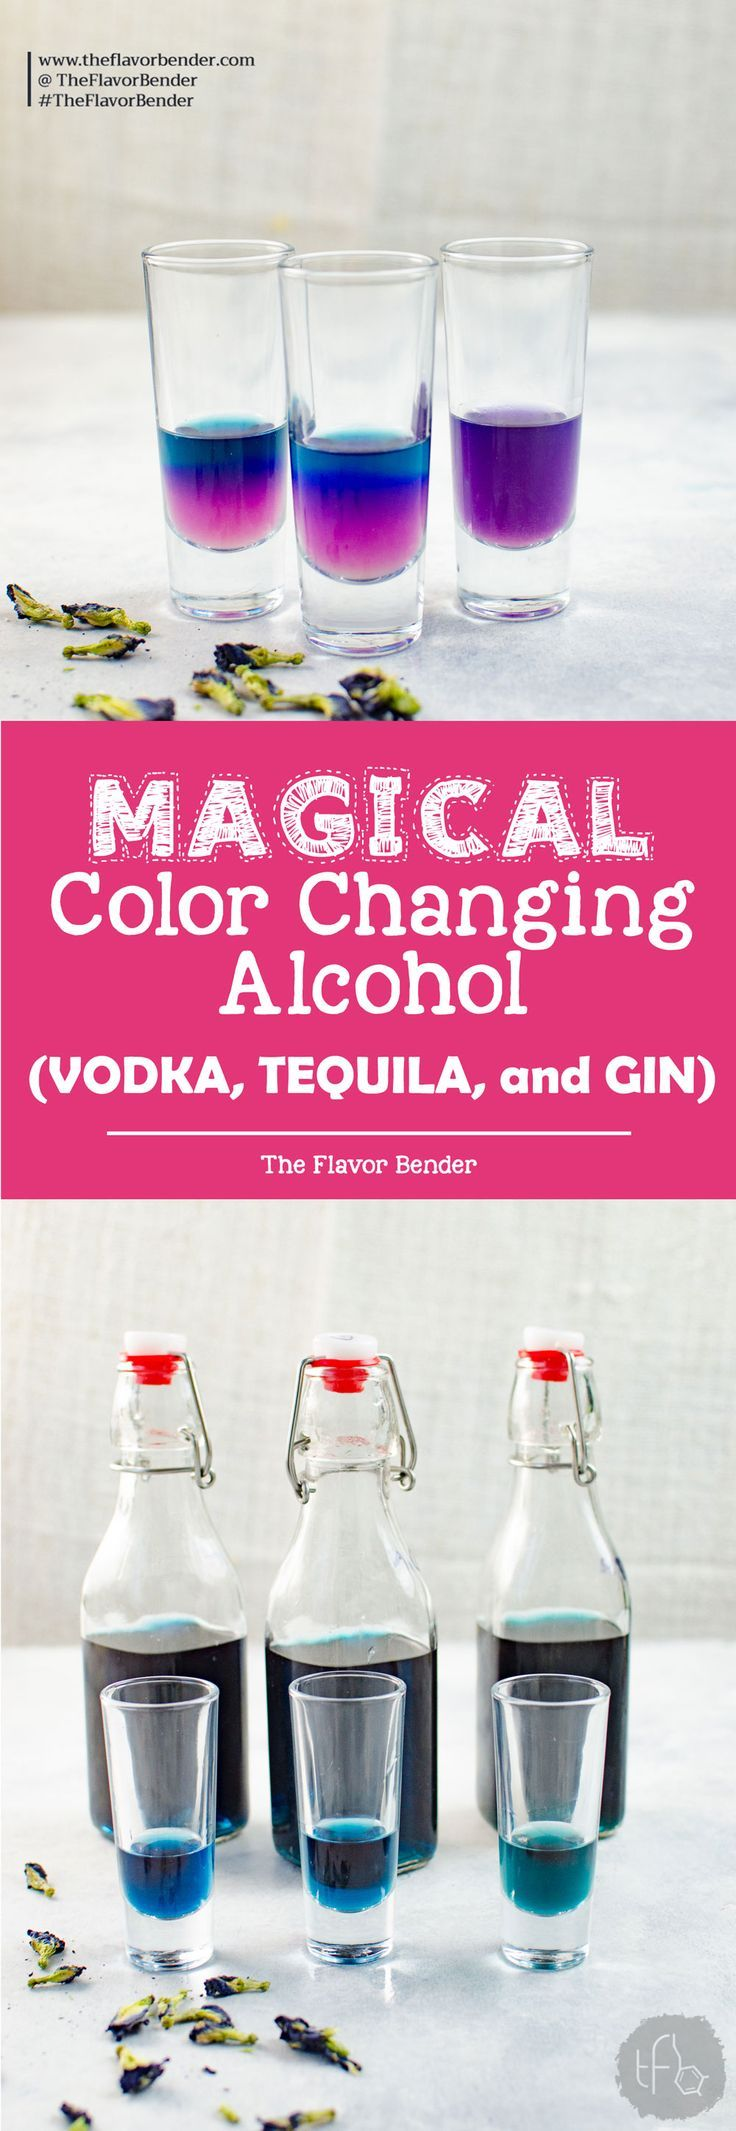 Magical Color Changing Alcohol (Vodka, Gin and Tequila) - wow your friends and family at your next get-together by making color changing magic cocktails with naturally infused color changing alcohol with one (not so) secret ingredient! #Butterflypea #ColorChangingDrinks #ColorChangingSpirits #Galaxy via @theflavorbender via @theflavorbender